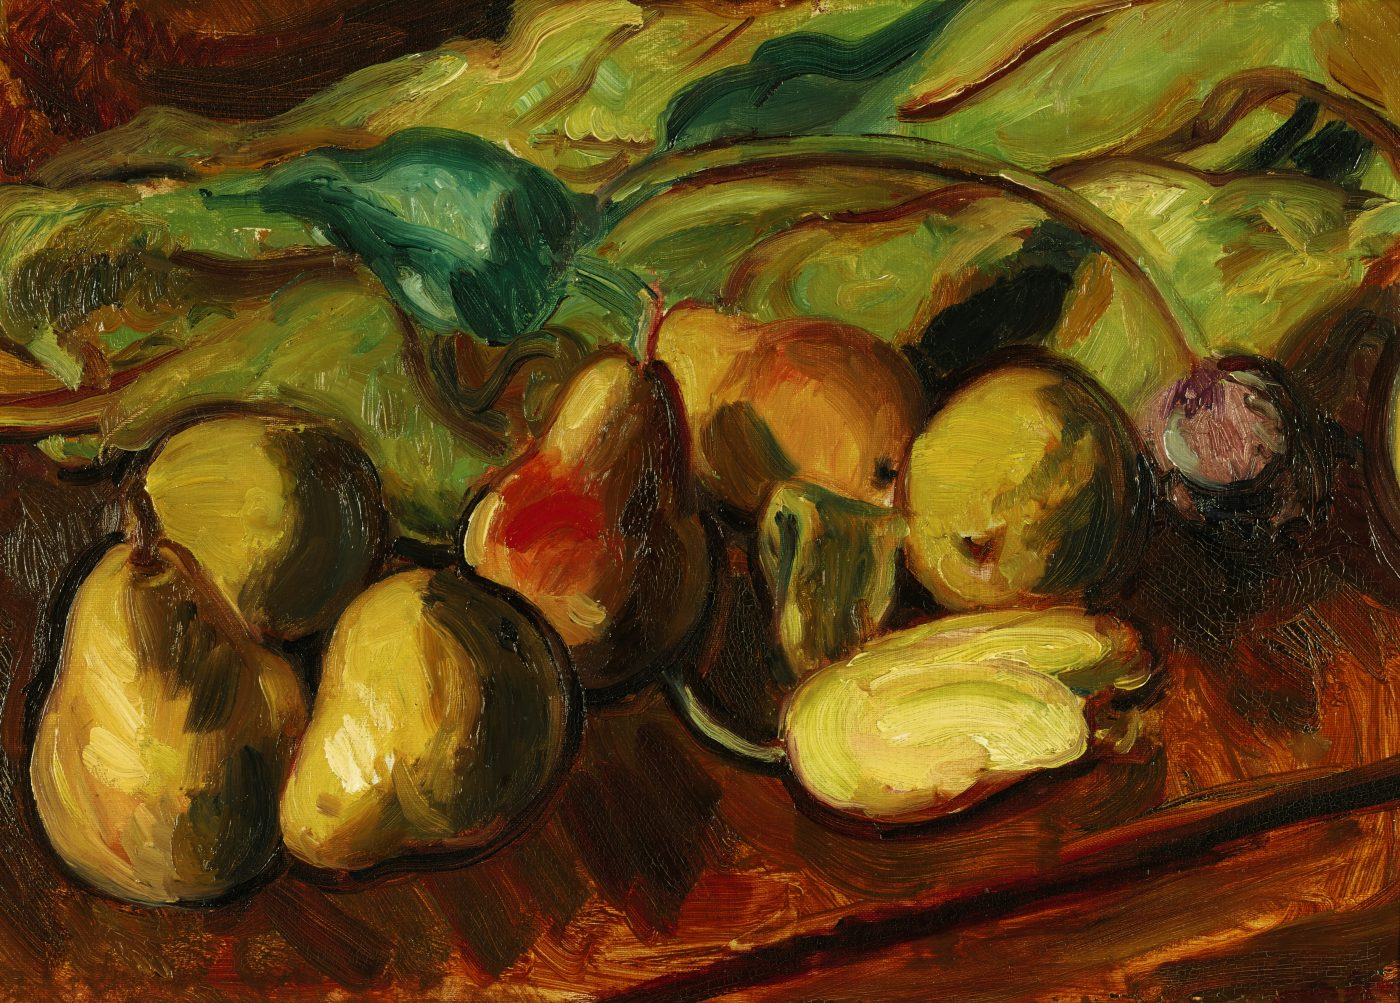 Matthew Smith (1879-1959), Still Life of Pears and Tulips